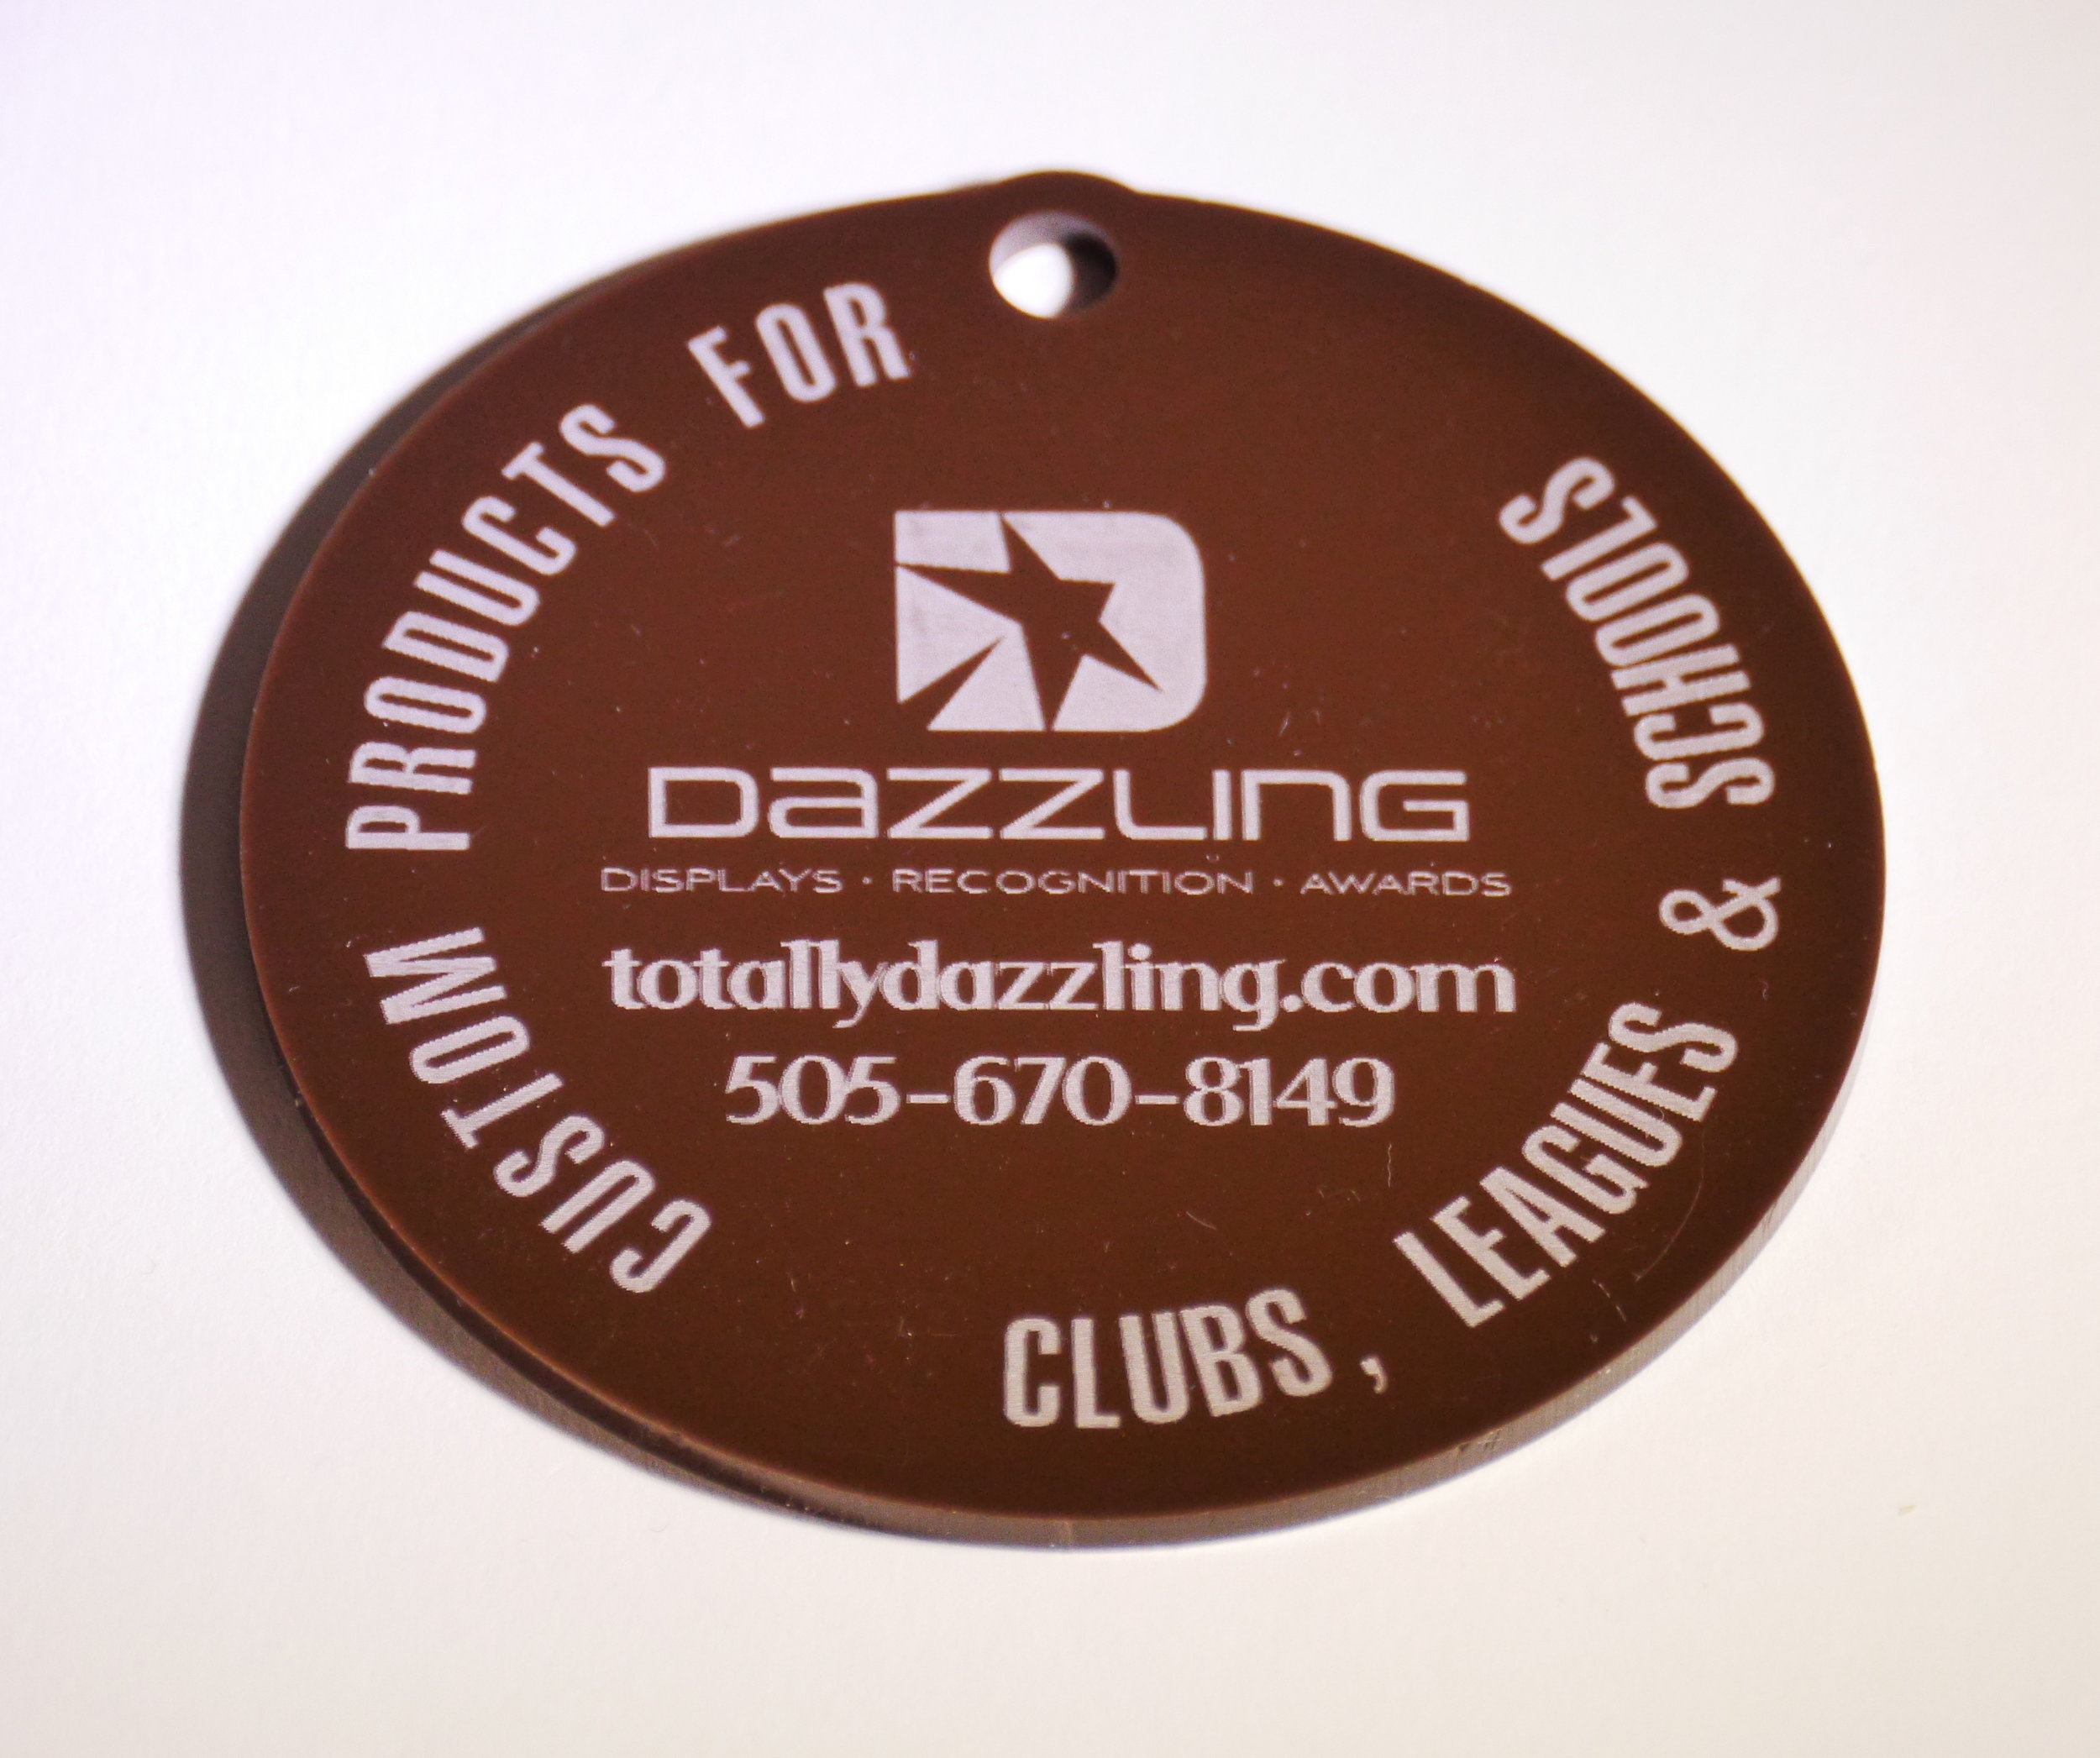 "3.5""D Custom Medallion - Custom etching in very fine tolerance.  Graphic software to quickly manipulate text and imagery.  A long history with custom fabrication, promotional products, and branding guidelines.  Contact us for design and pricing information."